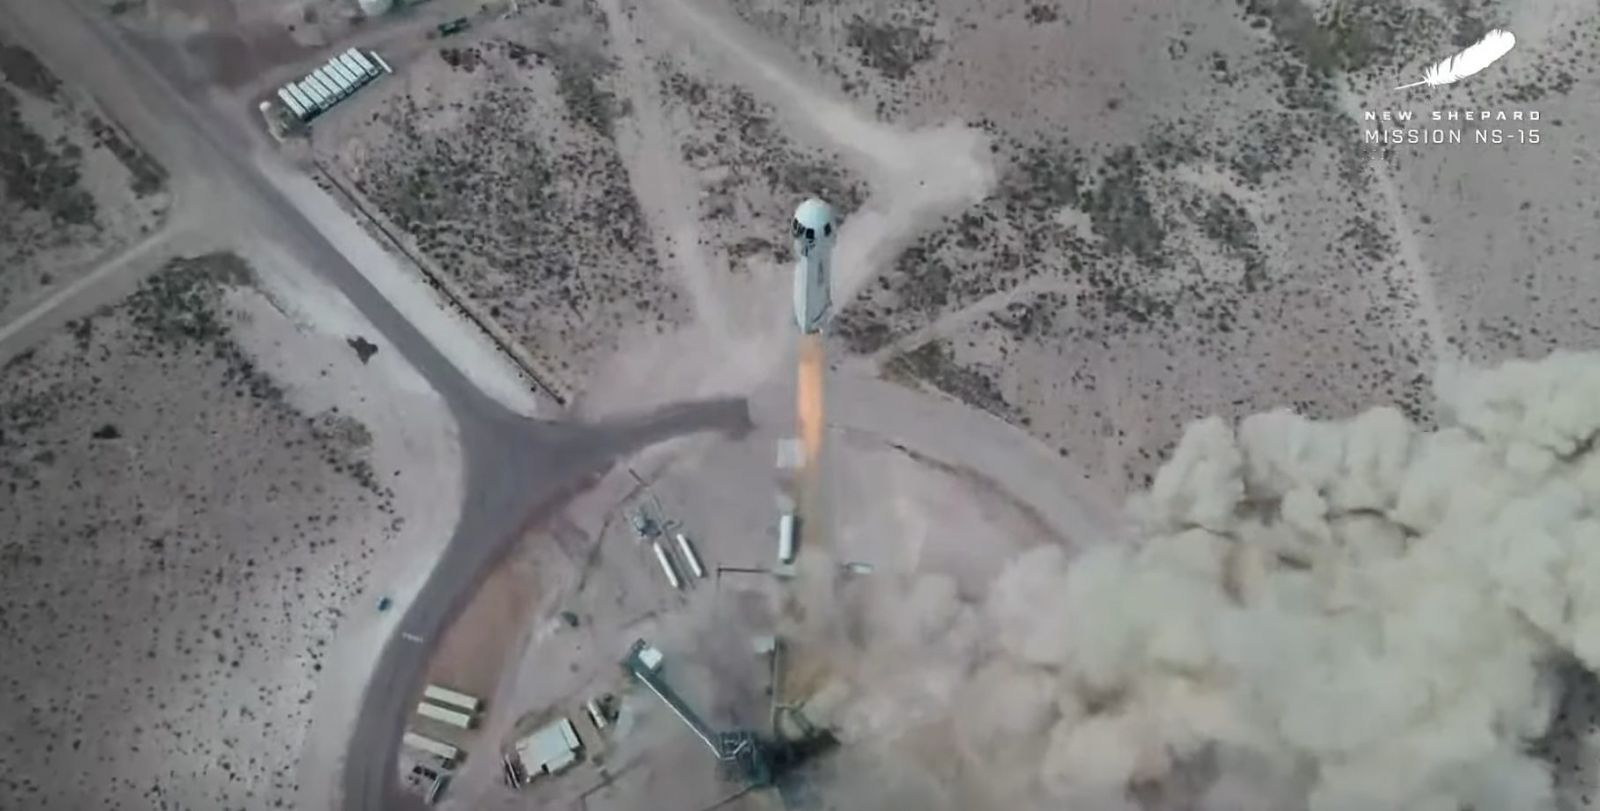 """New Shepard Mission NS-15 launches onto a suborbital trajectory with its crew capsule """"RSS First Step"""" riding atop. Aboard was just a test dummy named """"Mannequin Skywalker"""" as well as more than 25,000 postcards from the Club for the Future nonprofit organization. Credit: Blue Origin"""